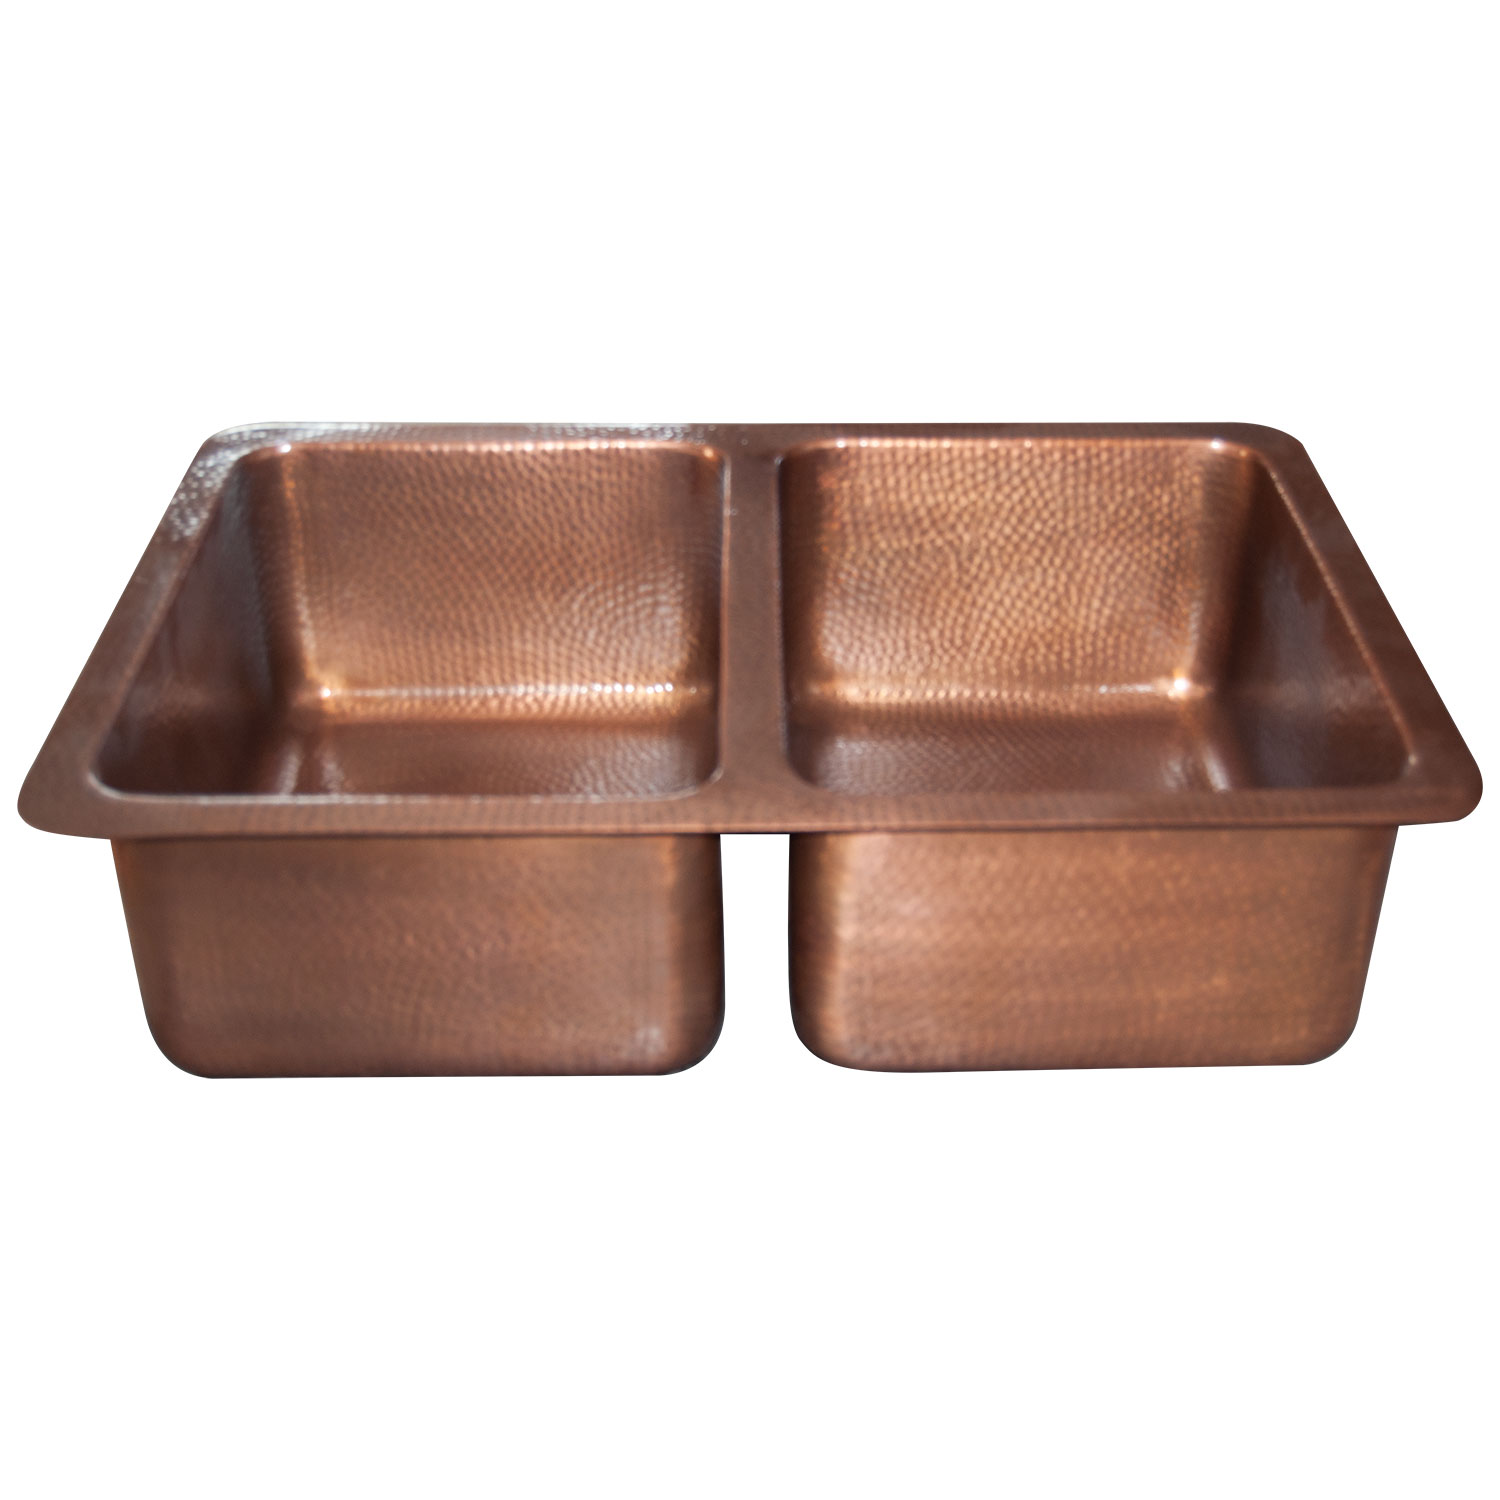 copper kitchen sink small table ideas double bowl hammered single wall antique finish